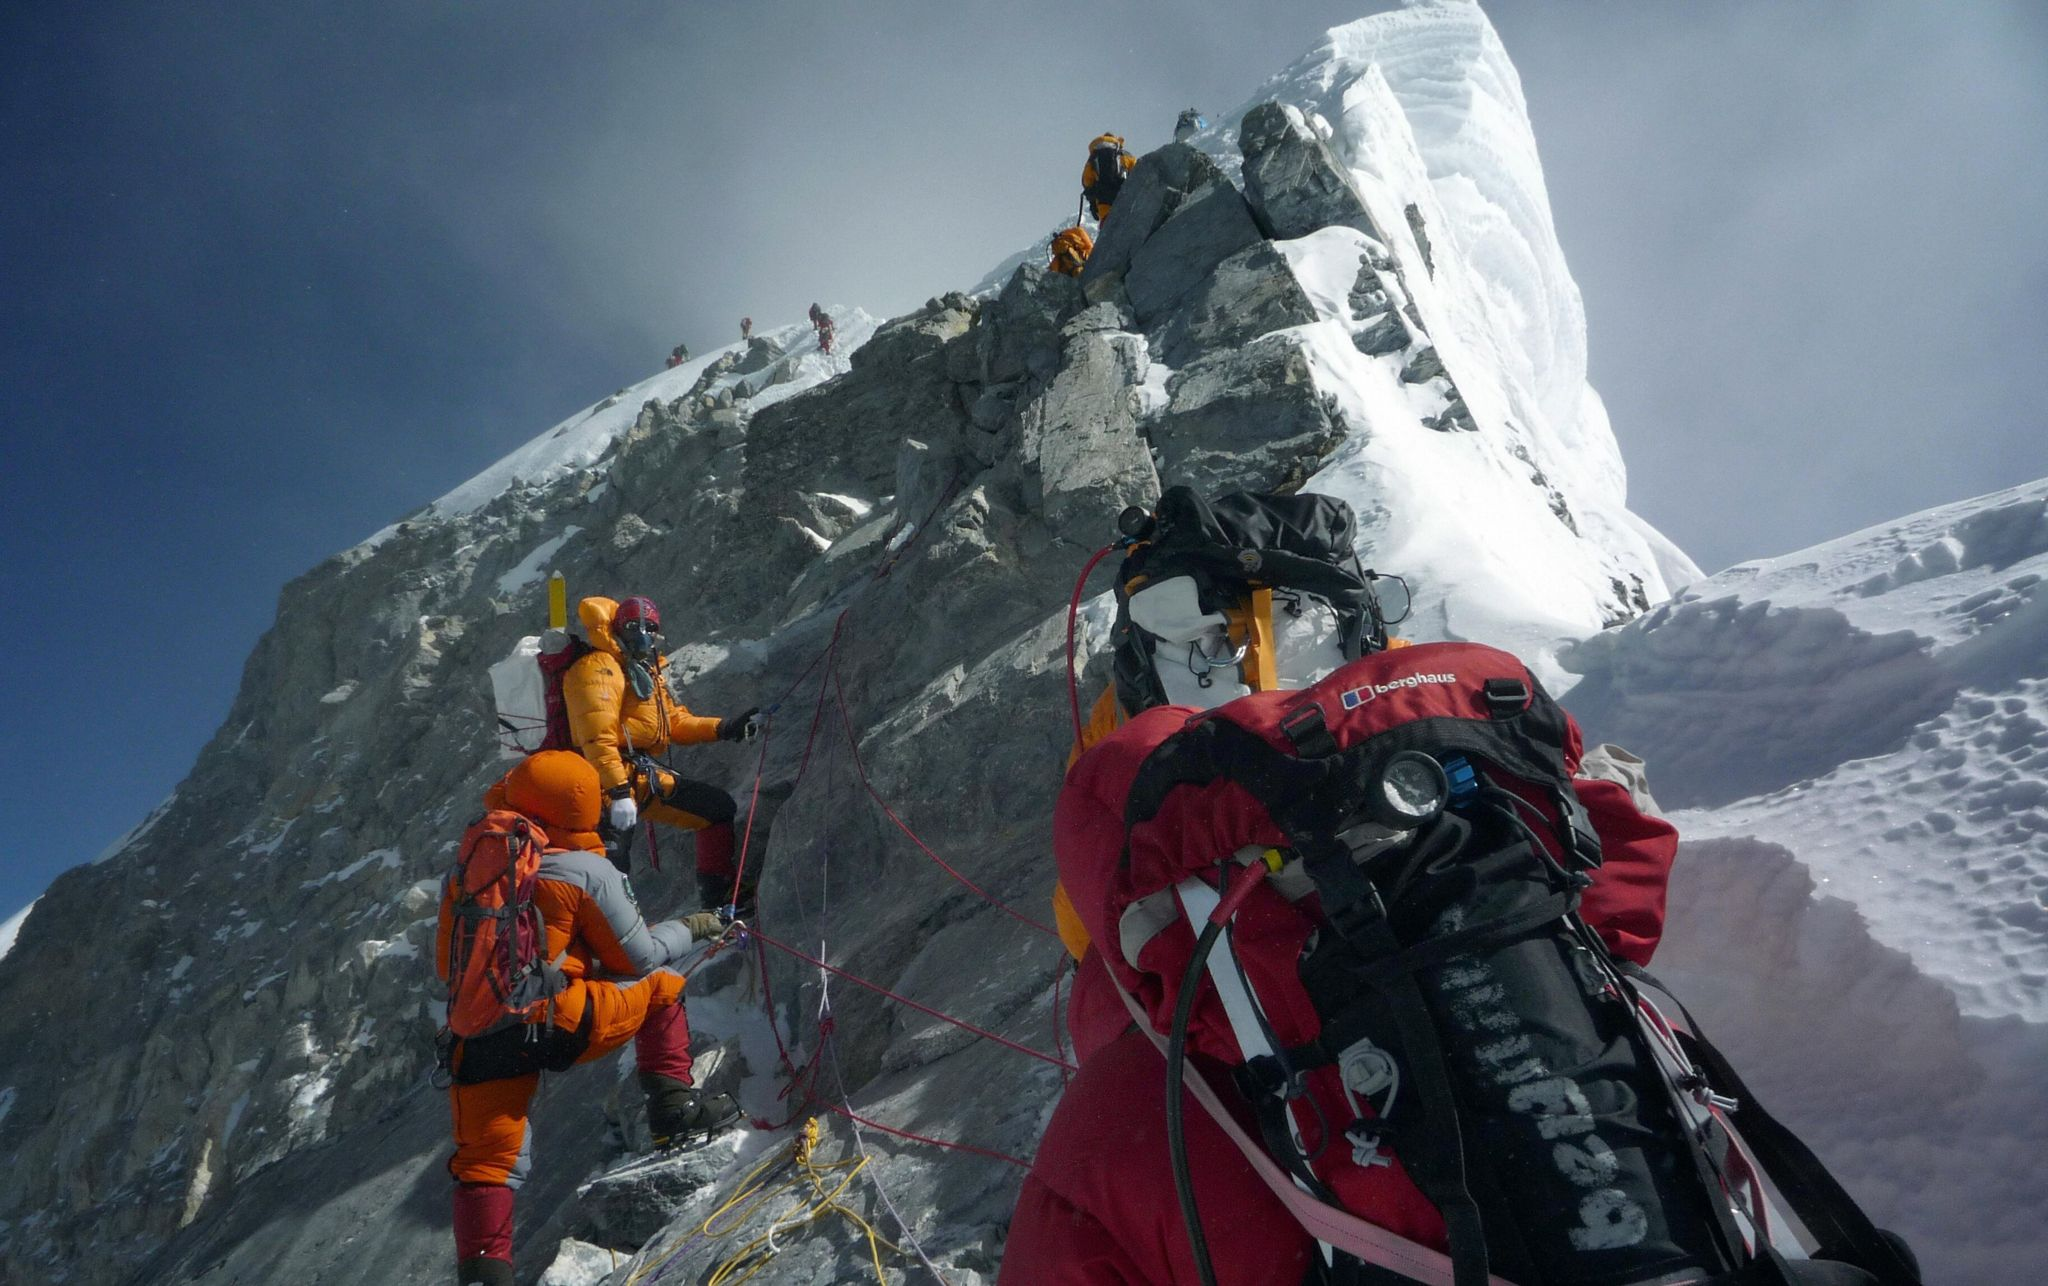 Unidentified mountaineers walk past the Hillary Step while pushing for the summit of Everest on May 19, 2009